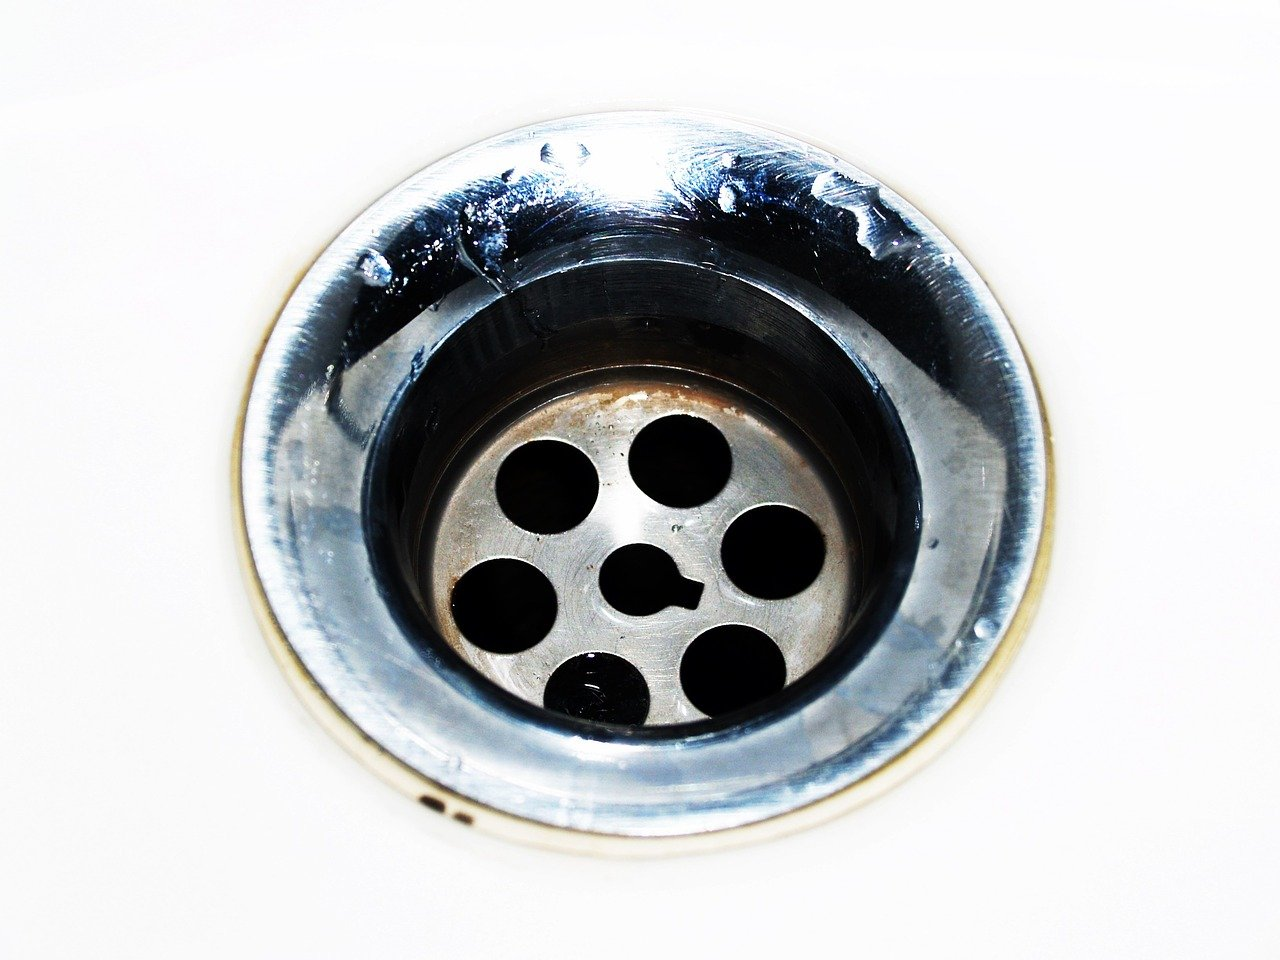 featured image - Importance of Obtaining Drain Cleaning Services